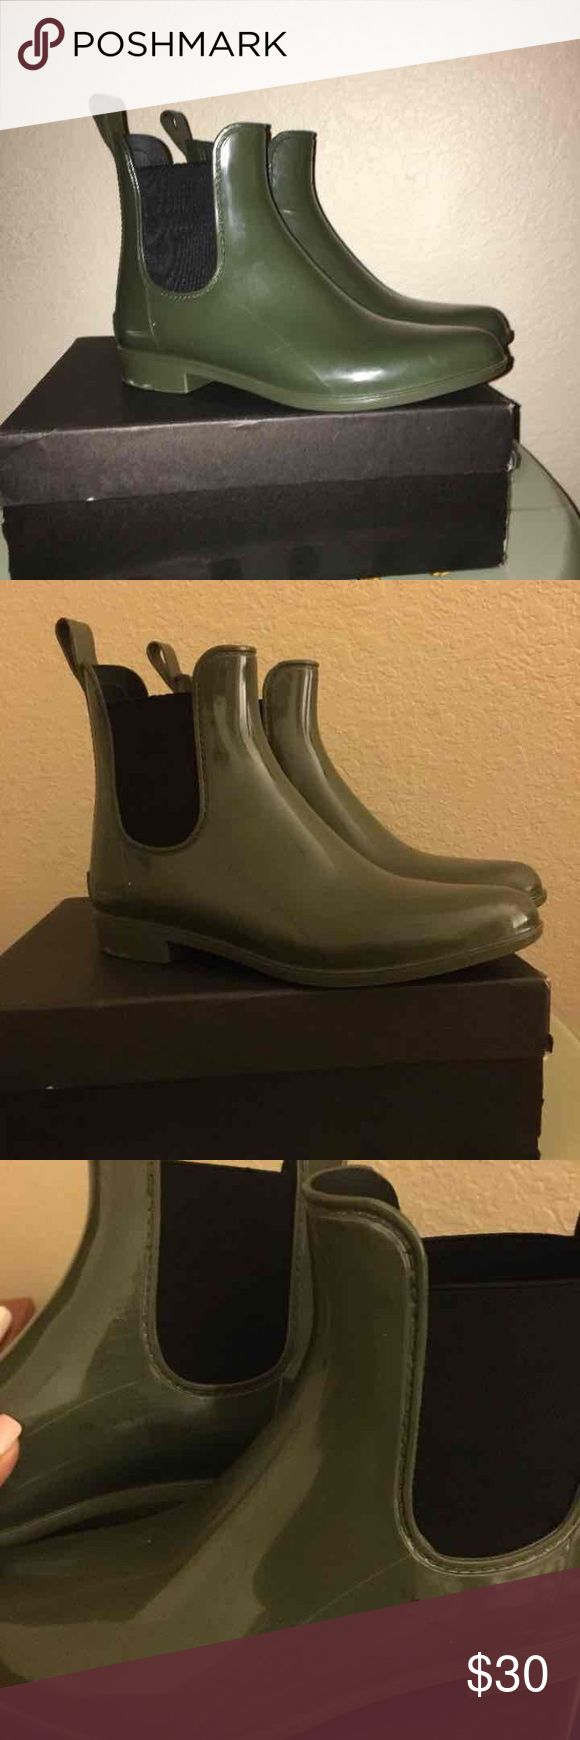 Chelsea Rain Boot J.crew chelsea rain boot olive green in color still have lots of life scuffs and scratches here & there first picture taken with flash  3rd shows black scuffs & a black code imprint from a piece a paper im guessing sold as is with box J. Crew Shoes Winter & Rain Boots